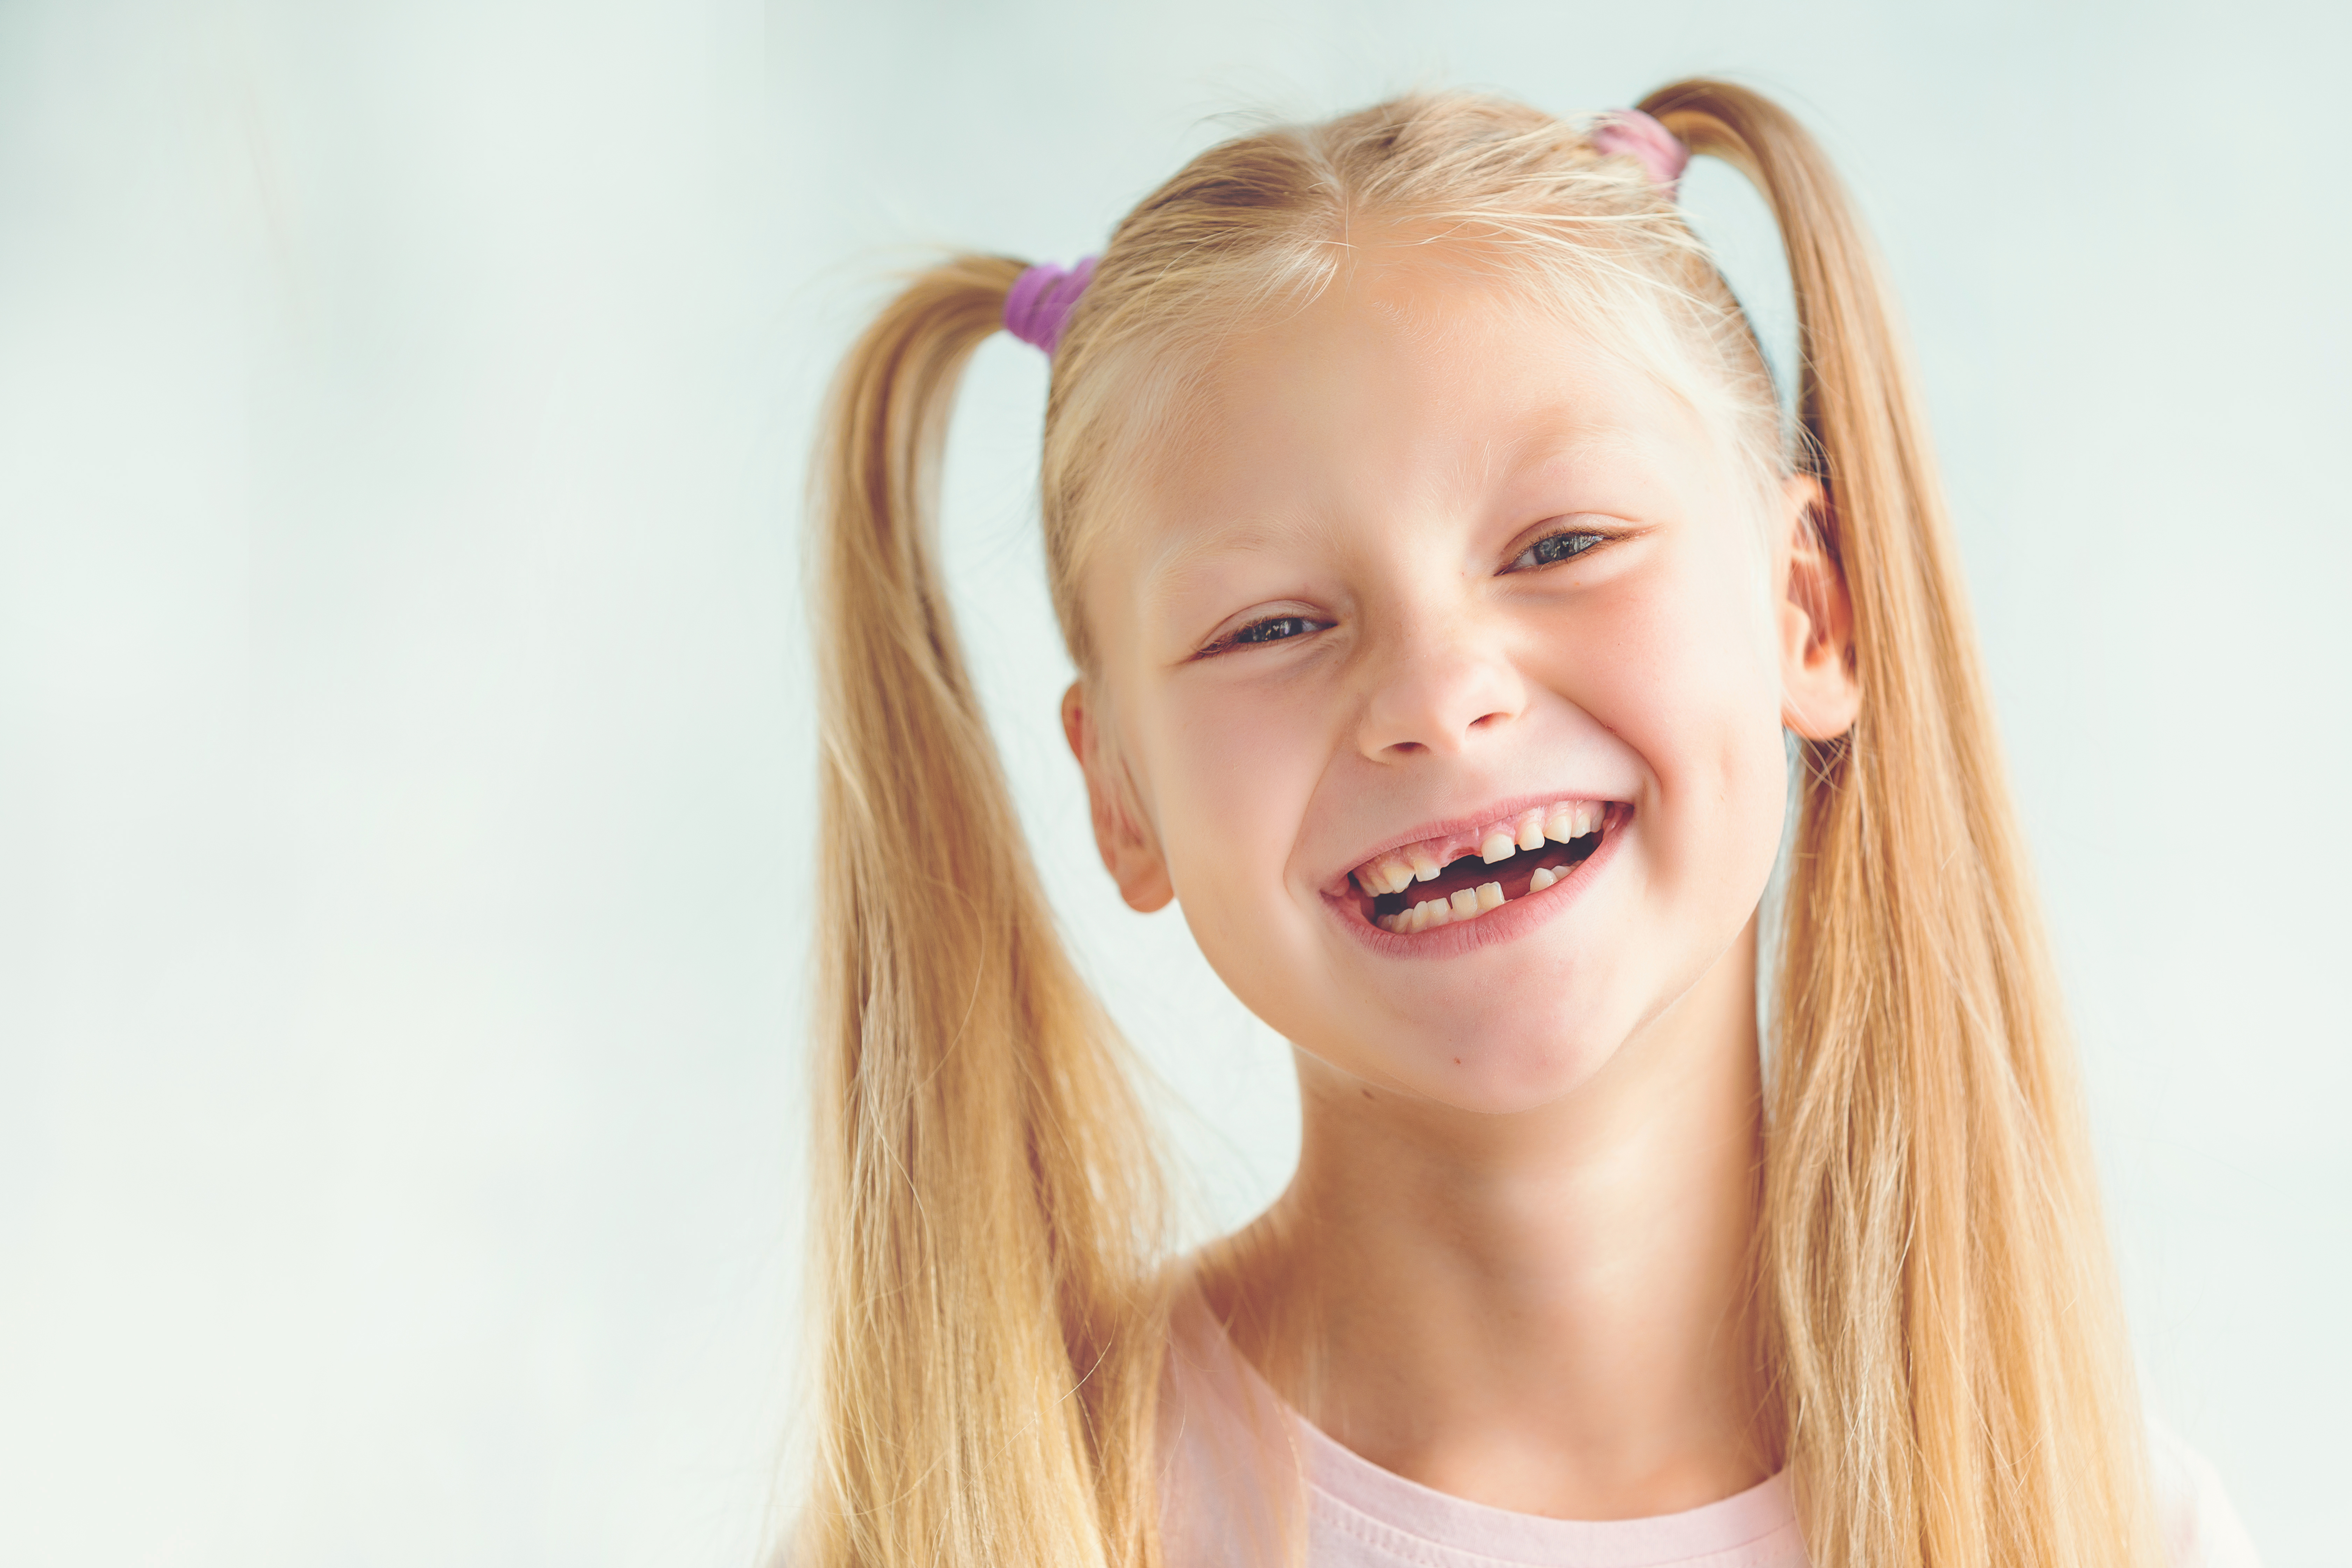 5 Things to do When Your Child Loses a Tooth